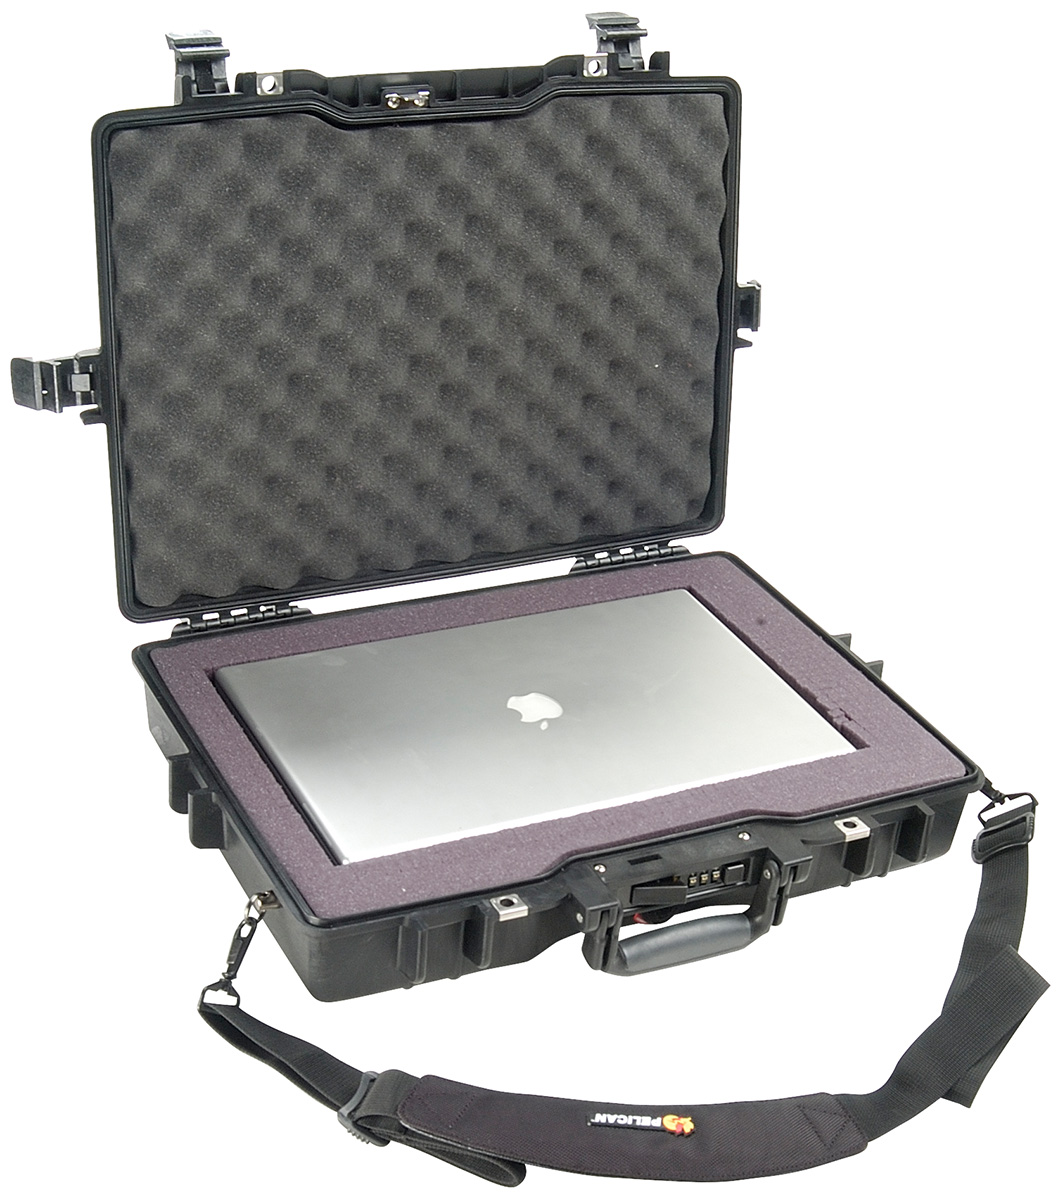 pelican peli products 1495 secure laptop carry macbook case